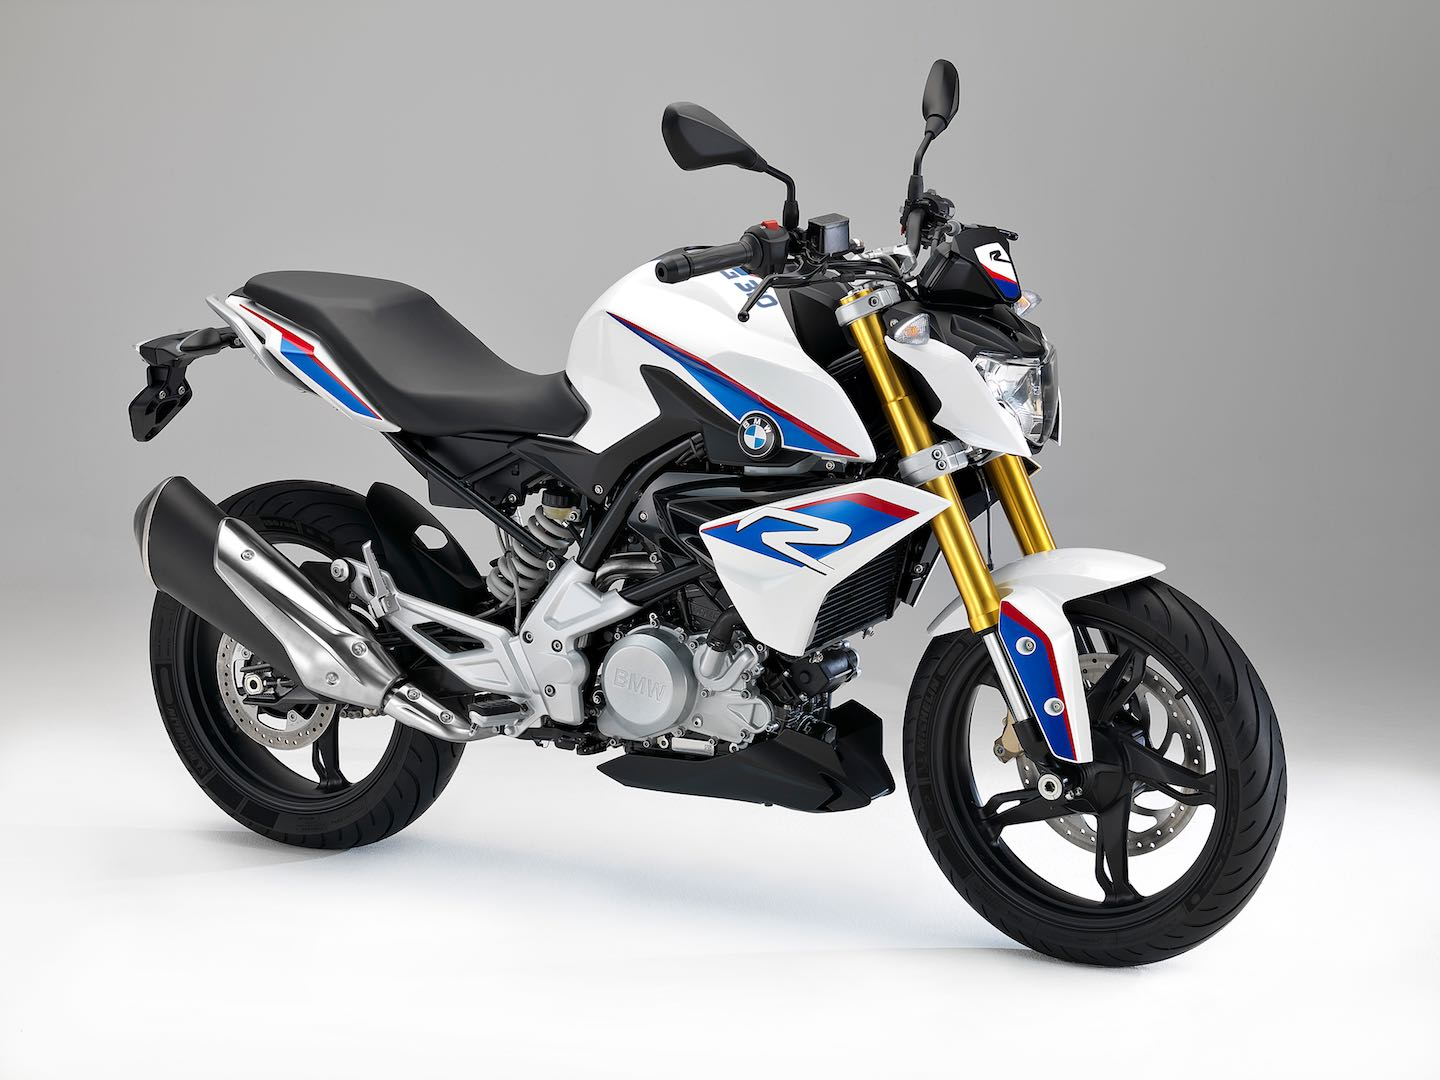 Bmw Recalls G 310 Gs And G 310 R Due To Sidestand Frame Defect 2017